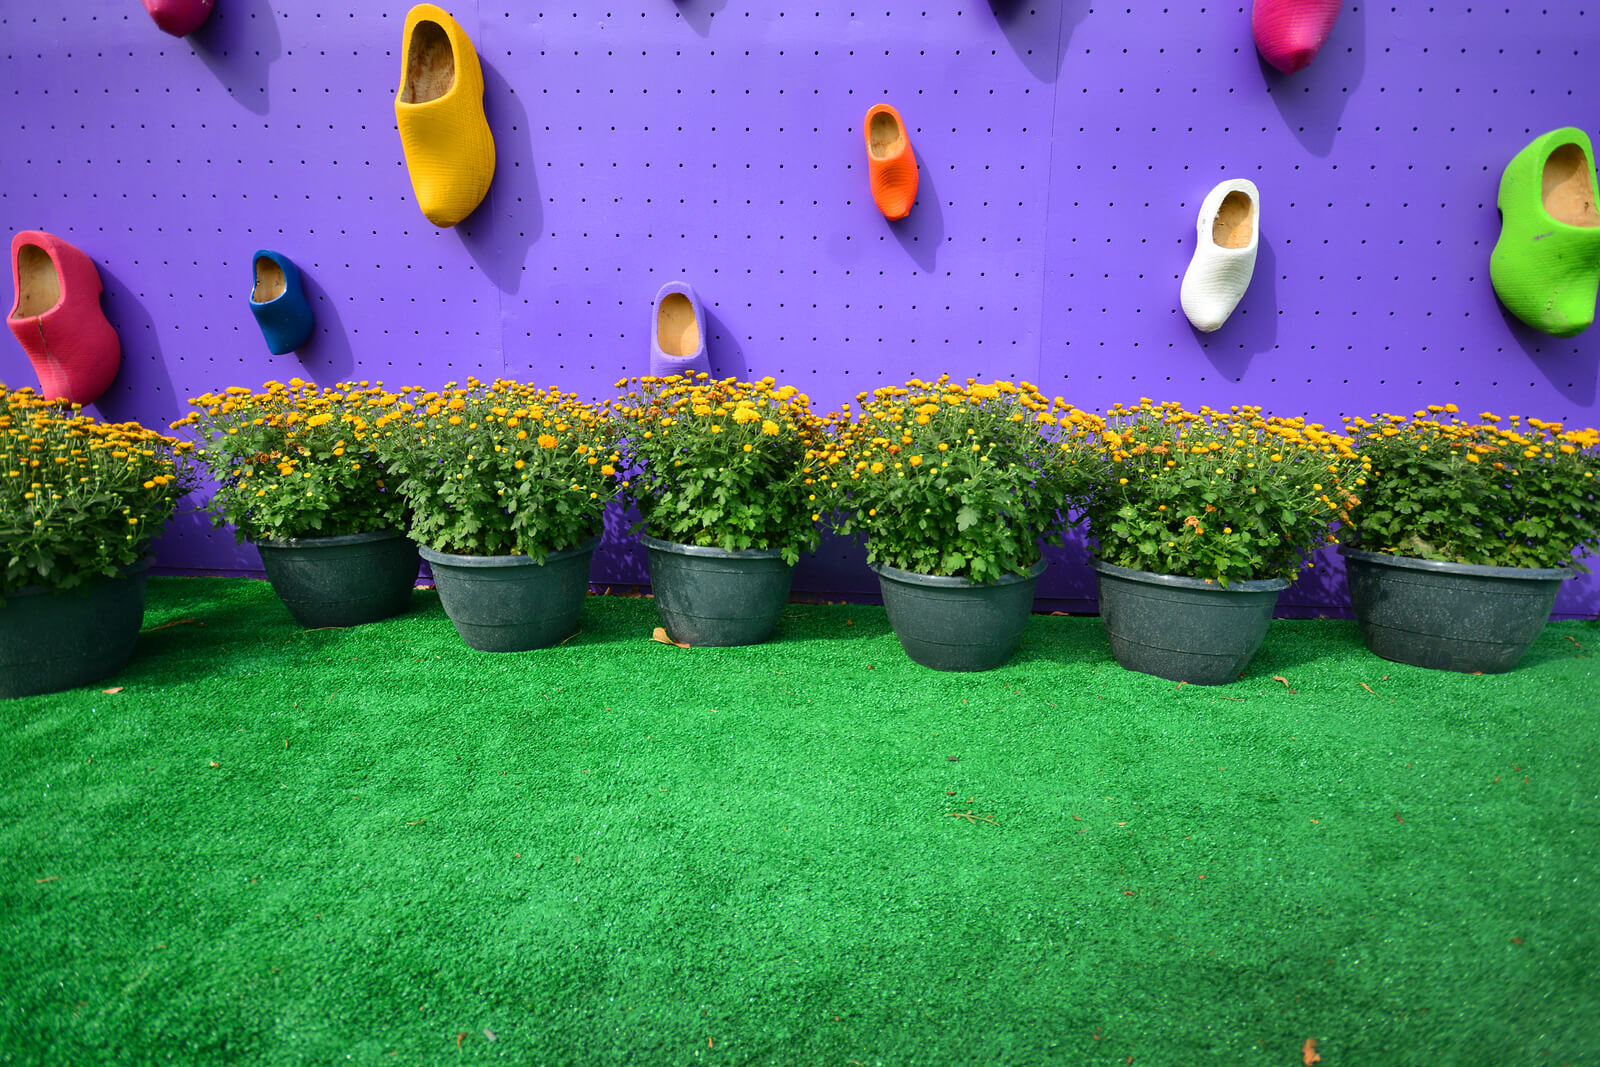 Landscape design background with artificial grass, flowerpots and decorative boots.